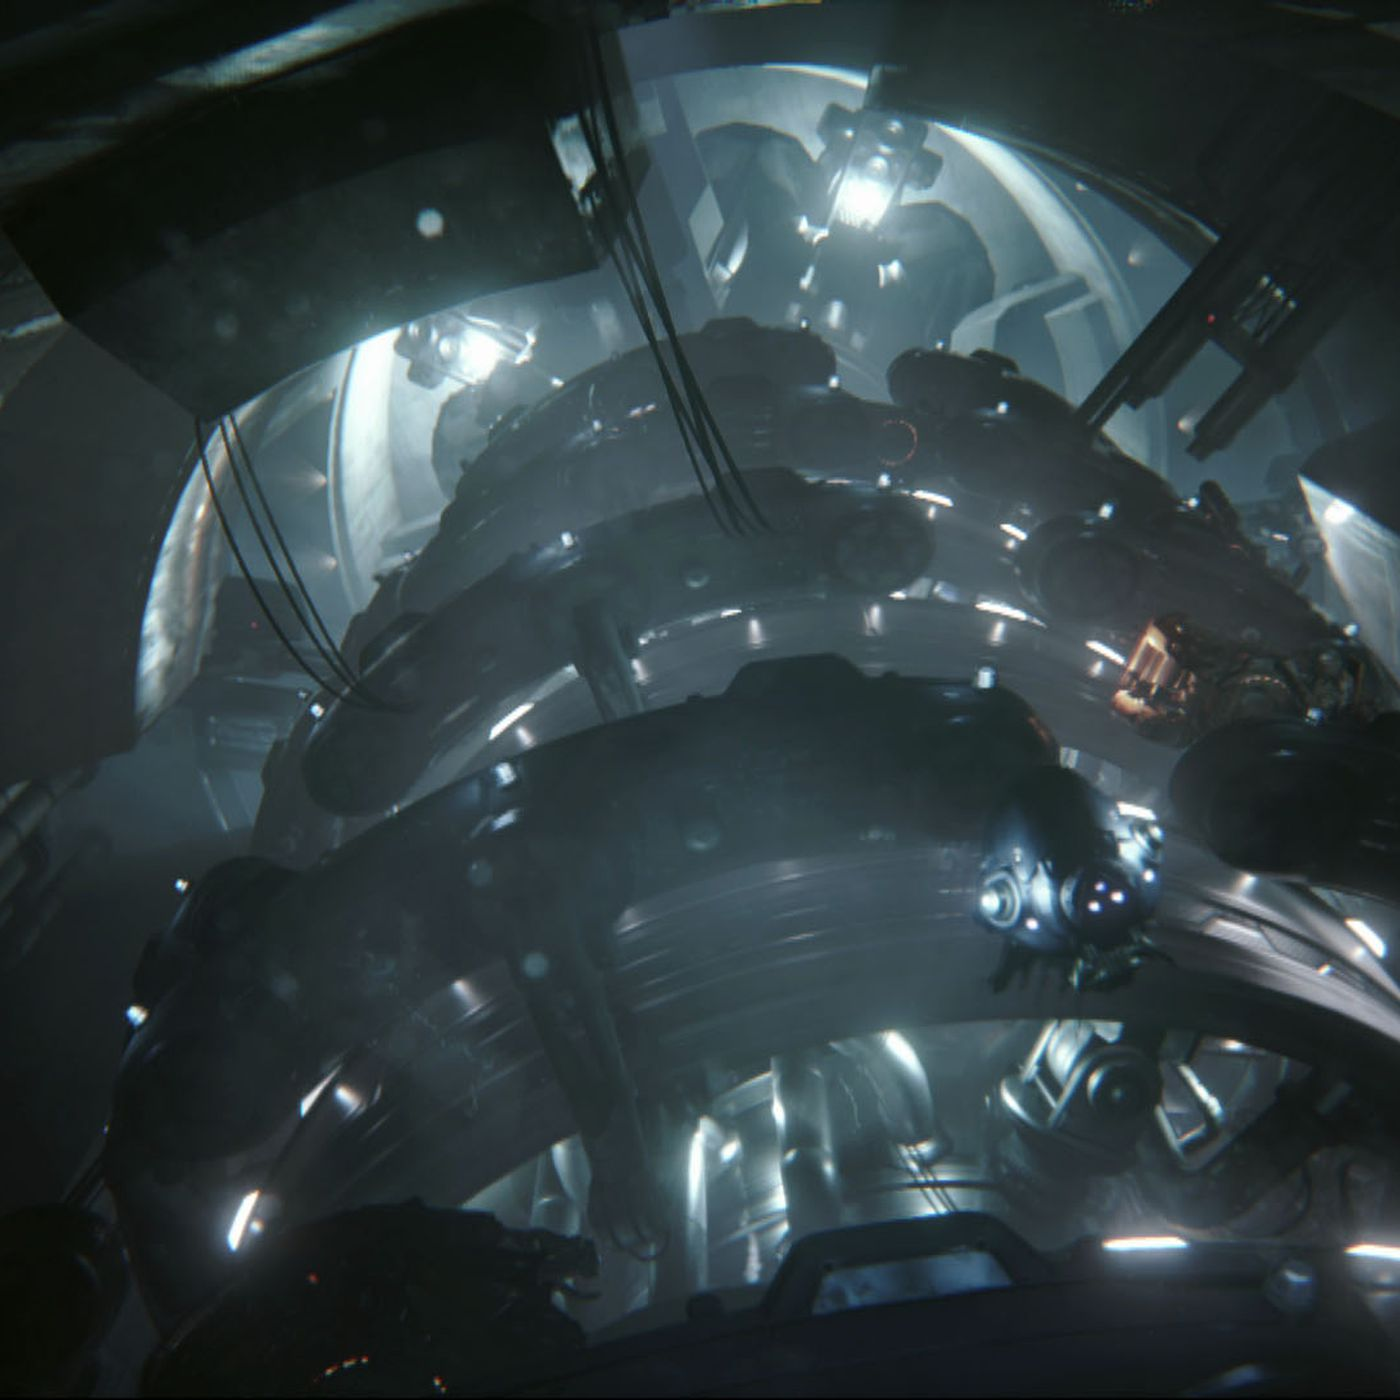 Unreal Engine 4 video dissects 'Infiltrator' visual effects